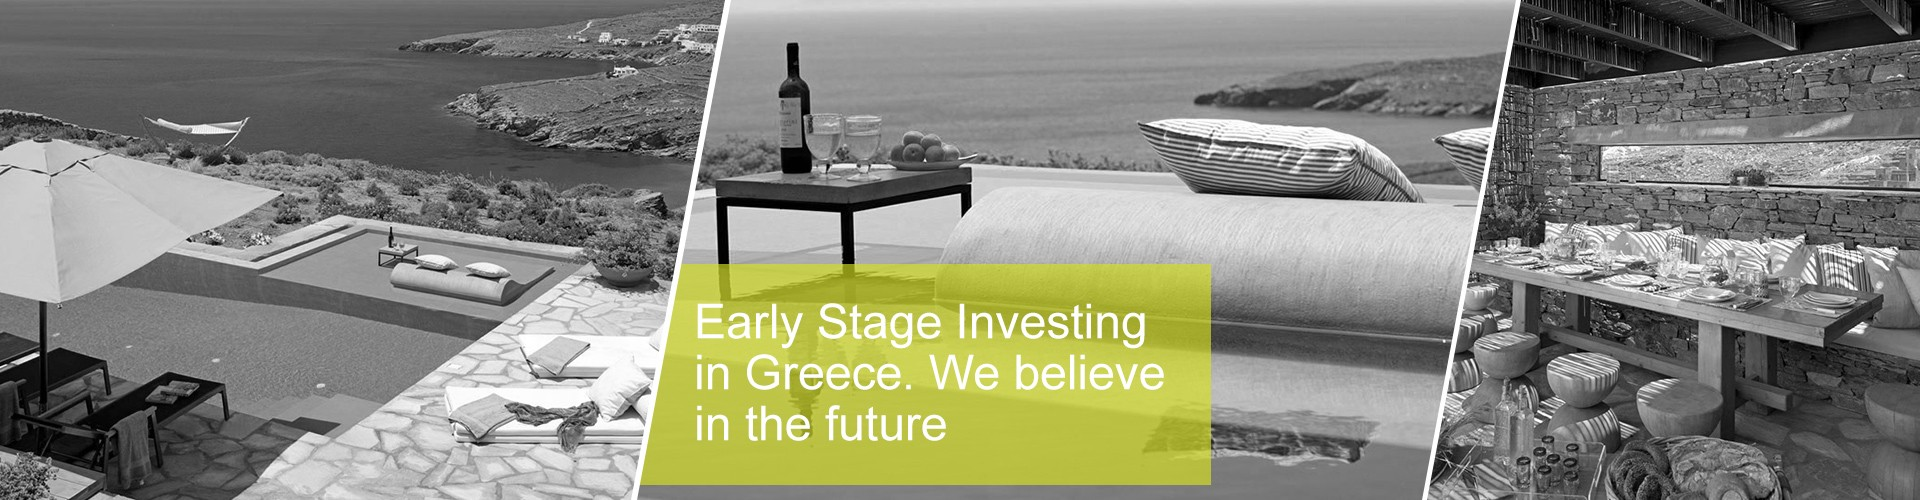 Early Stage Investing in Greece. We believe in the future